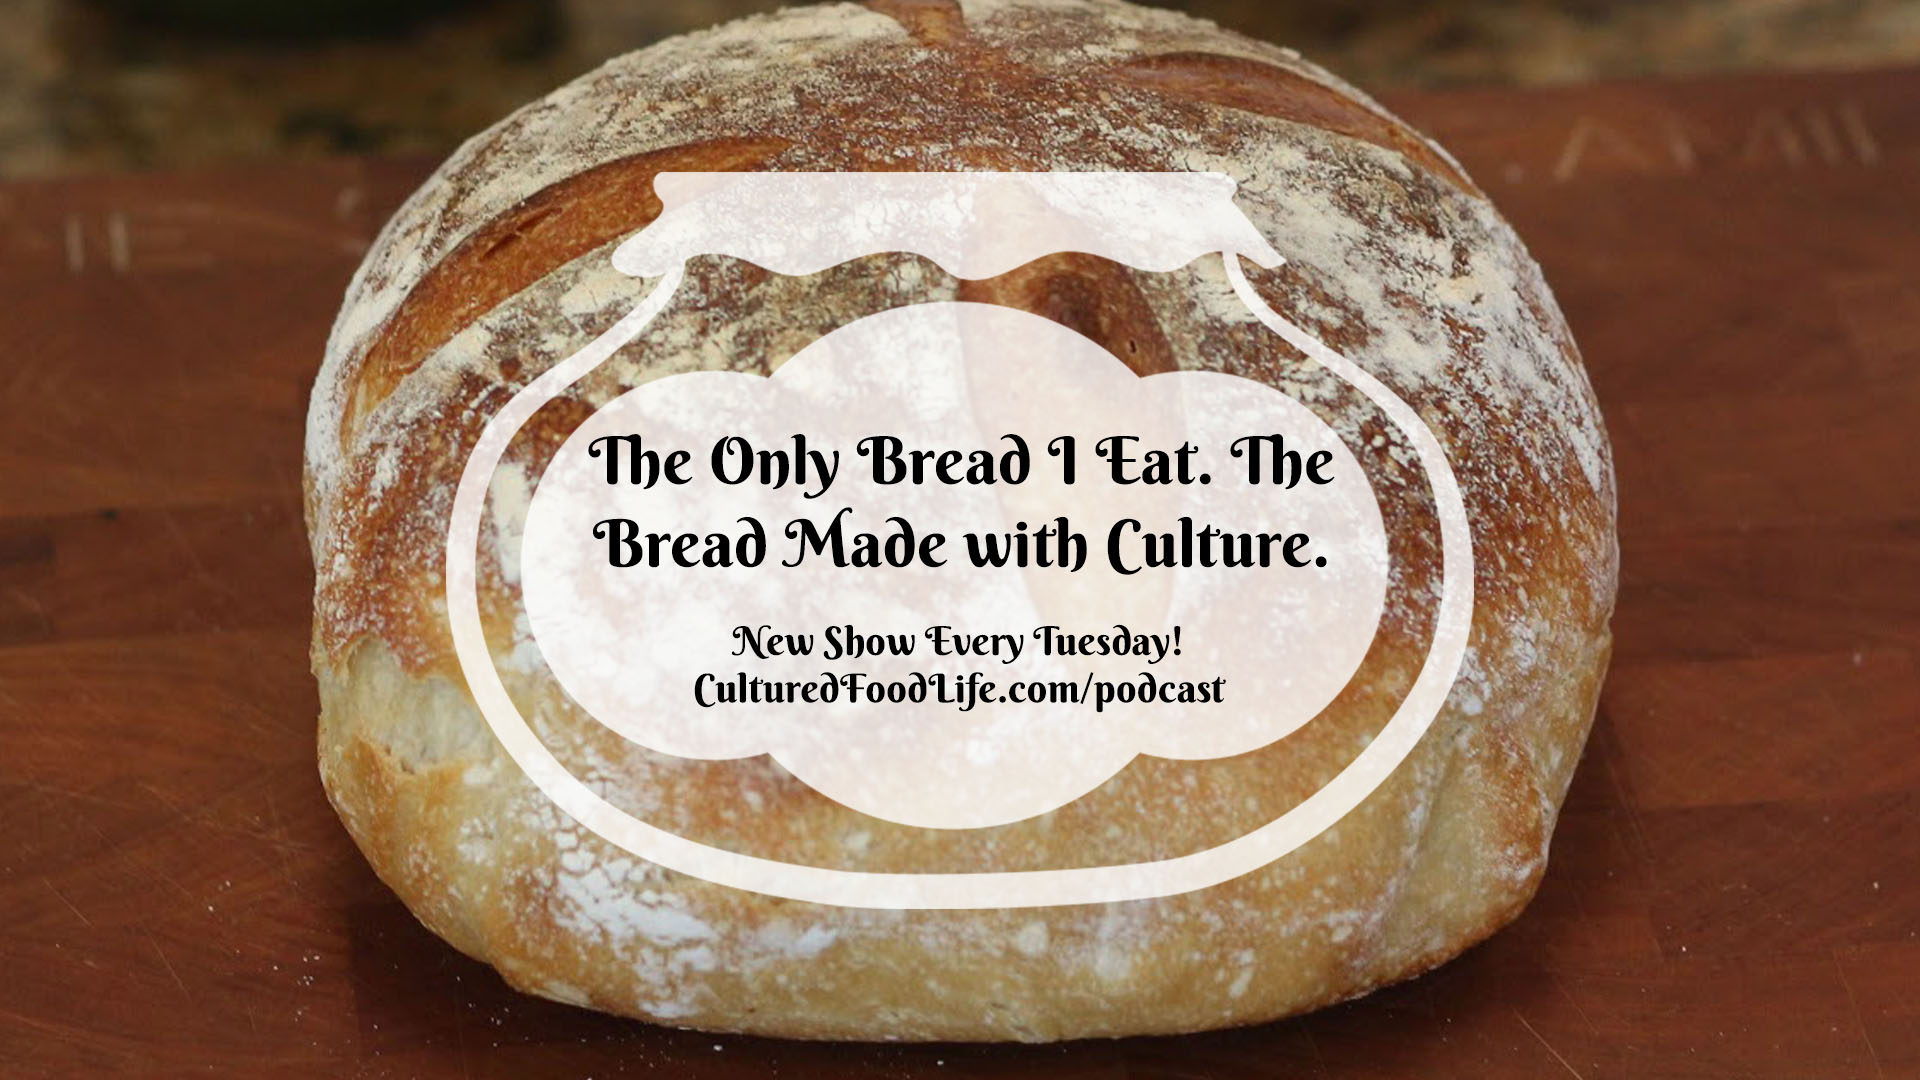 The Only Bread I Eat The Bread Made with Culture full